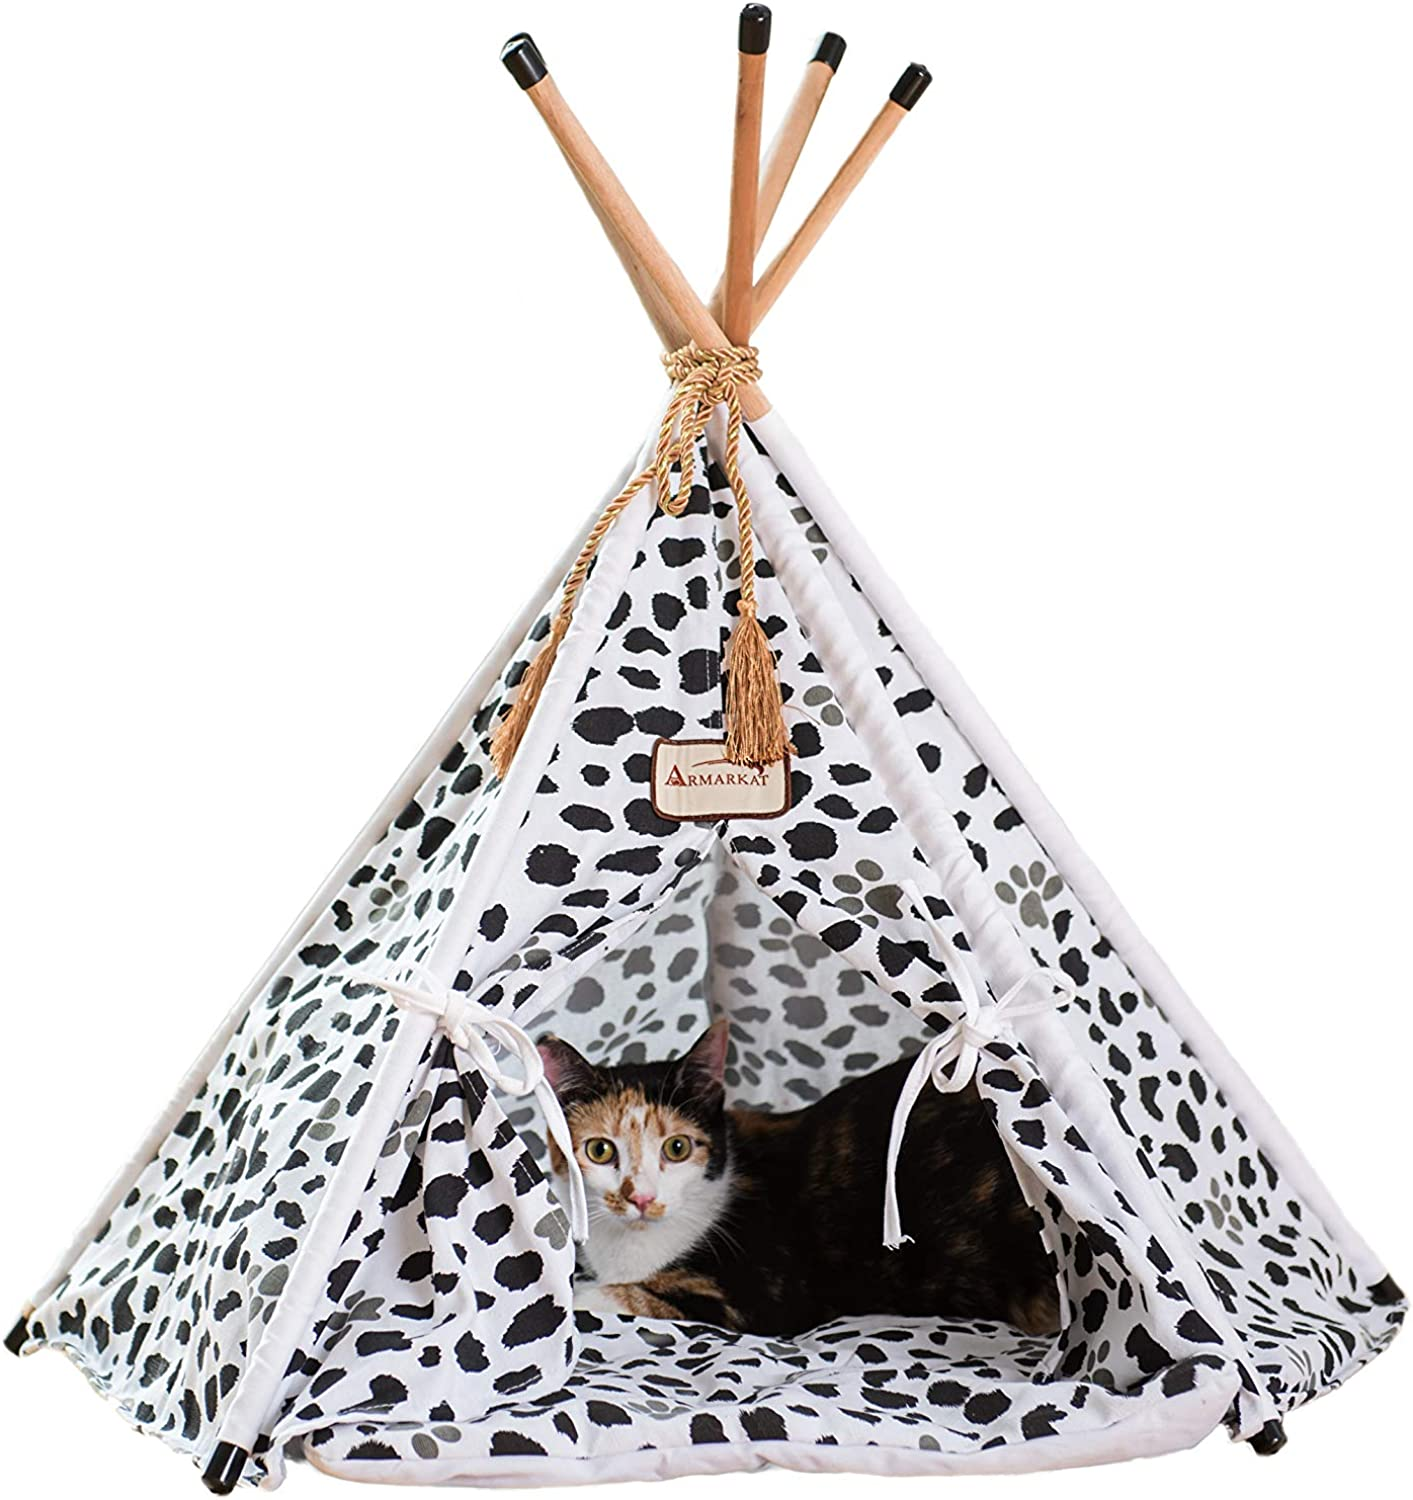 Armarkat Teepee Style Model C46 Cat Bed